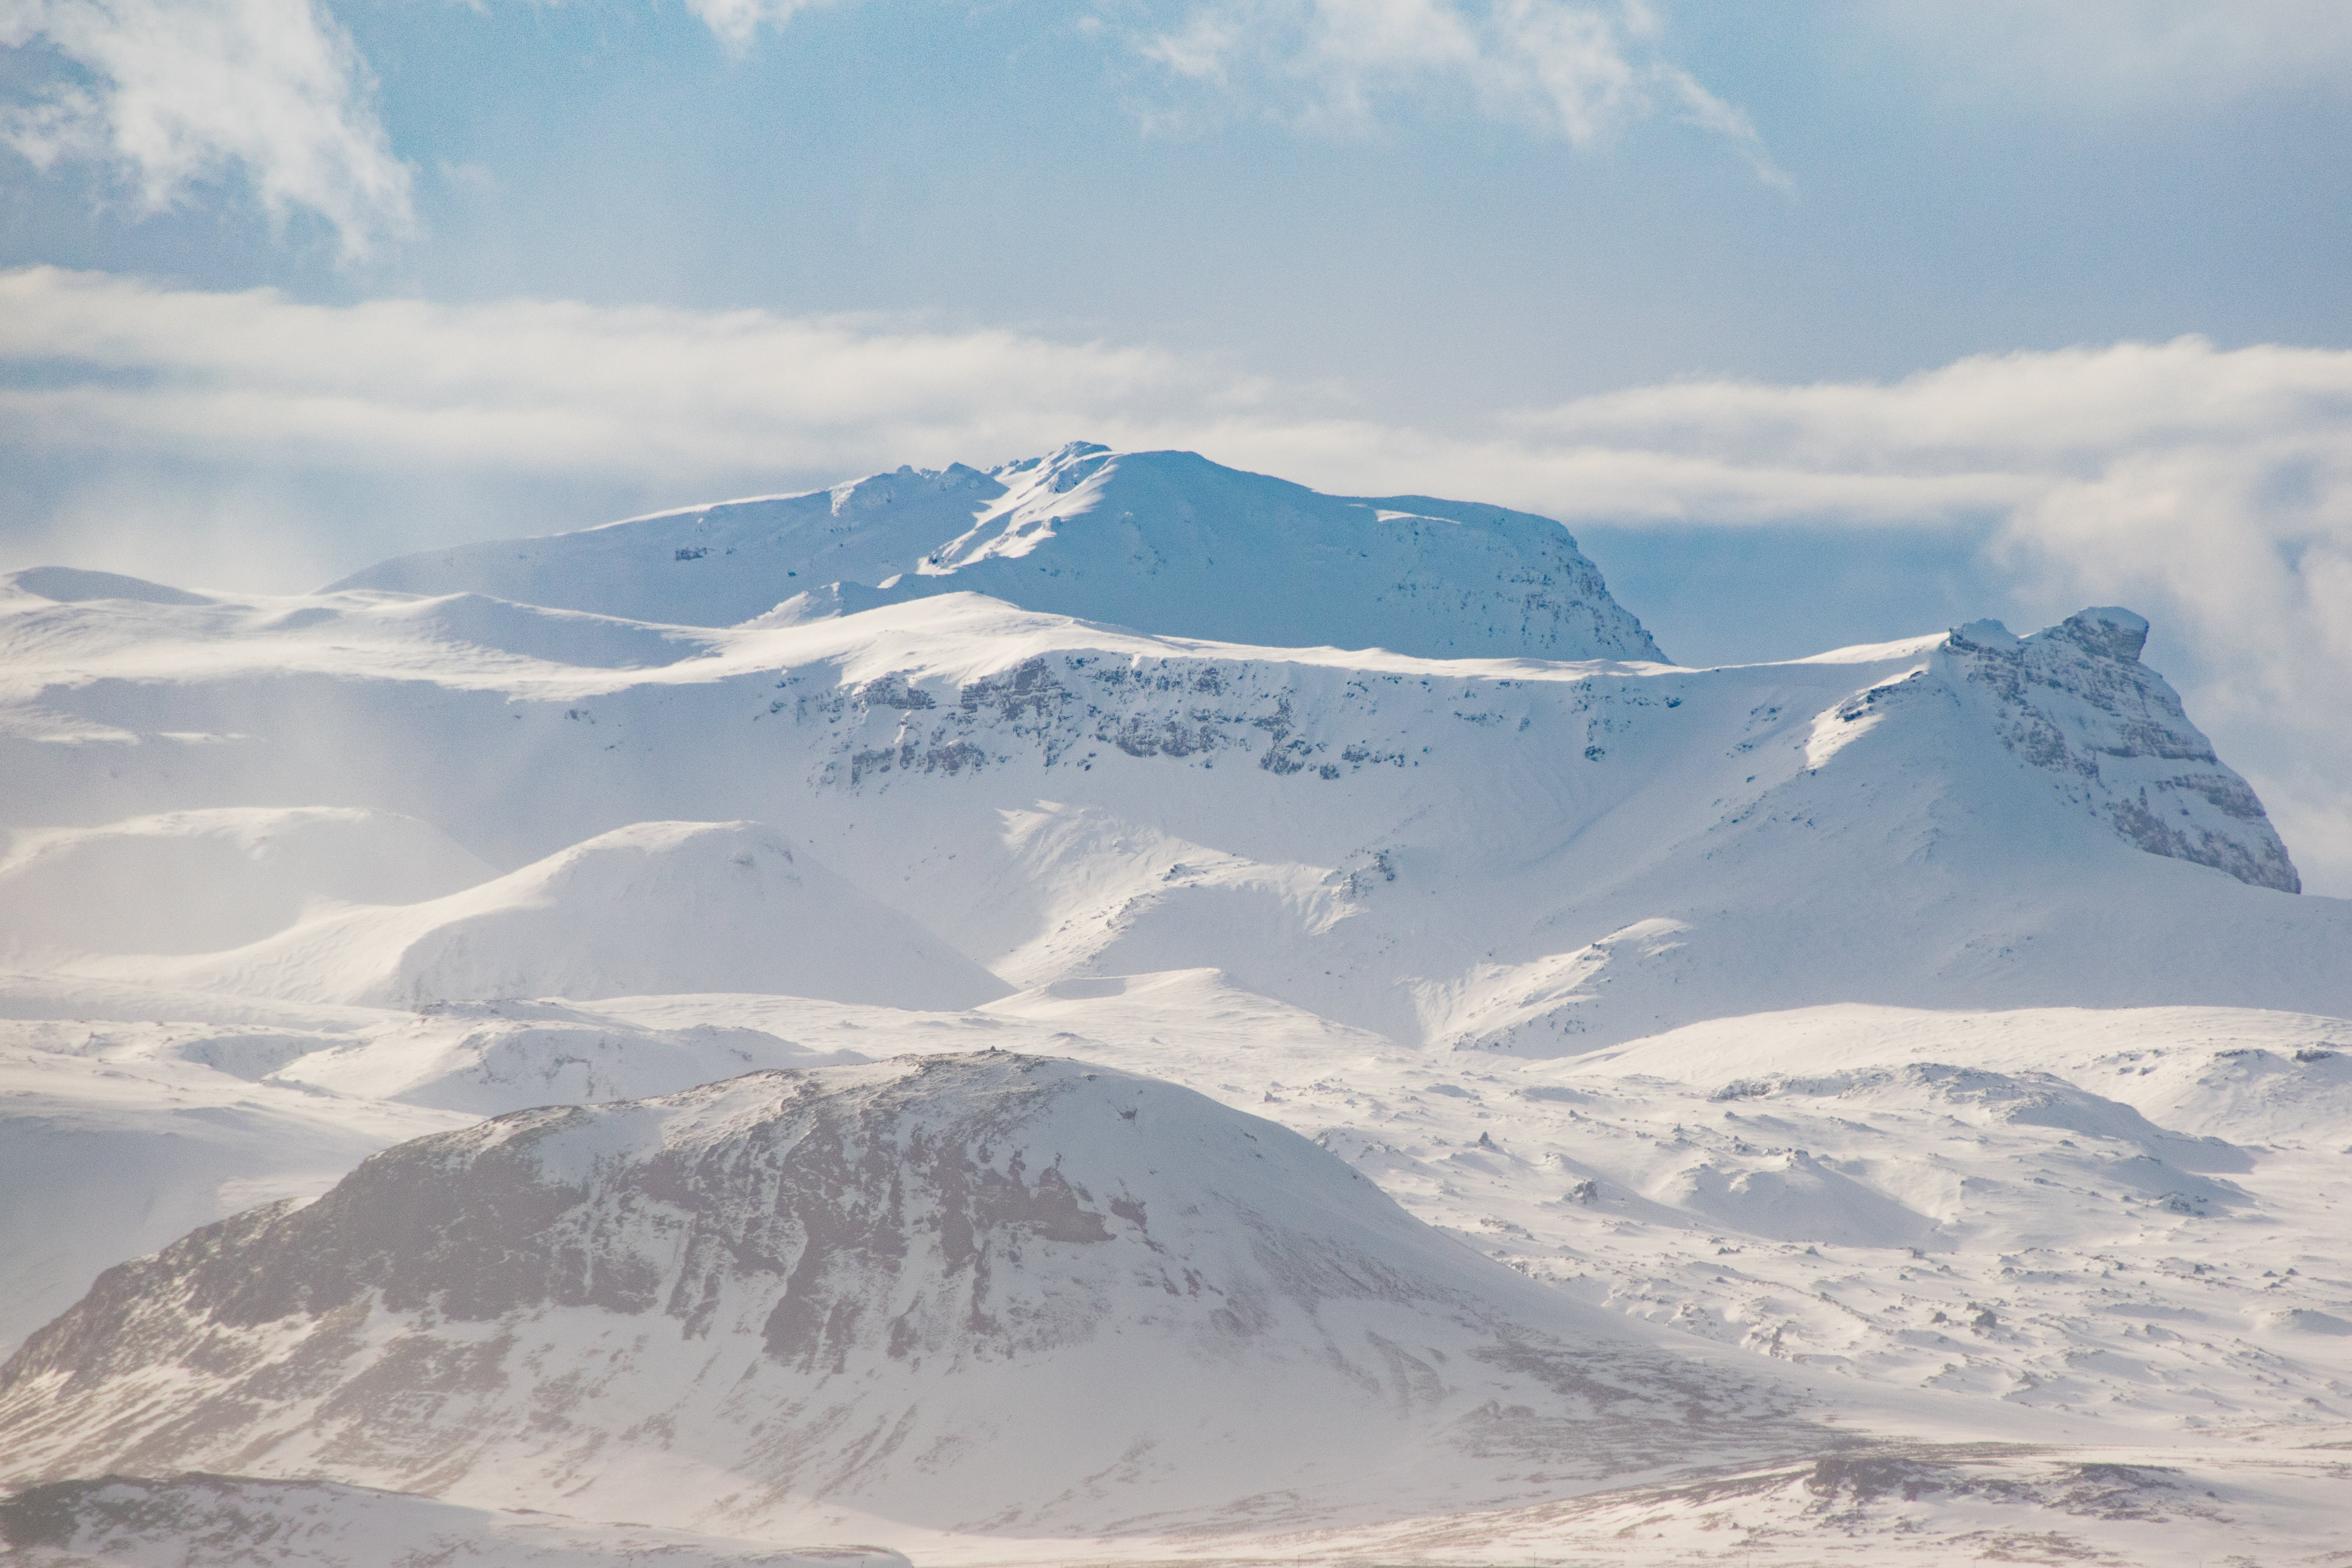 Snow Covered Mountain Ranges Under the White Skies